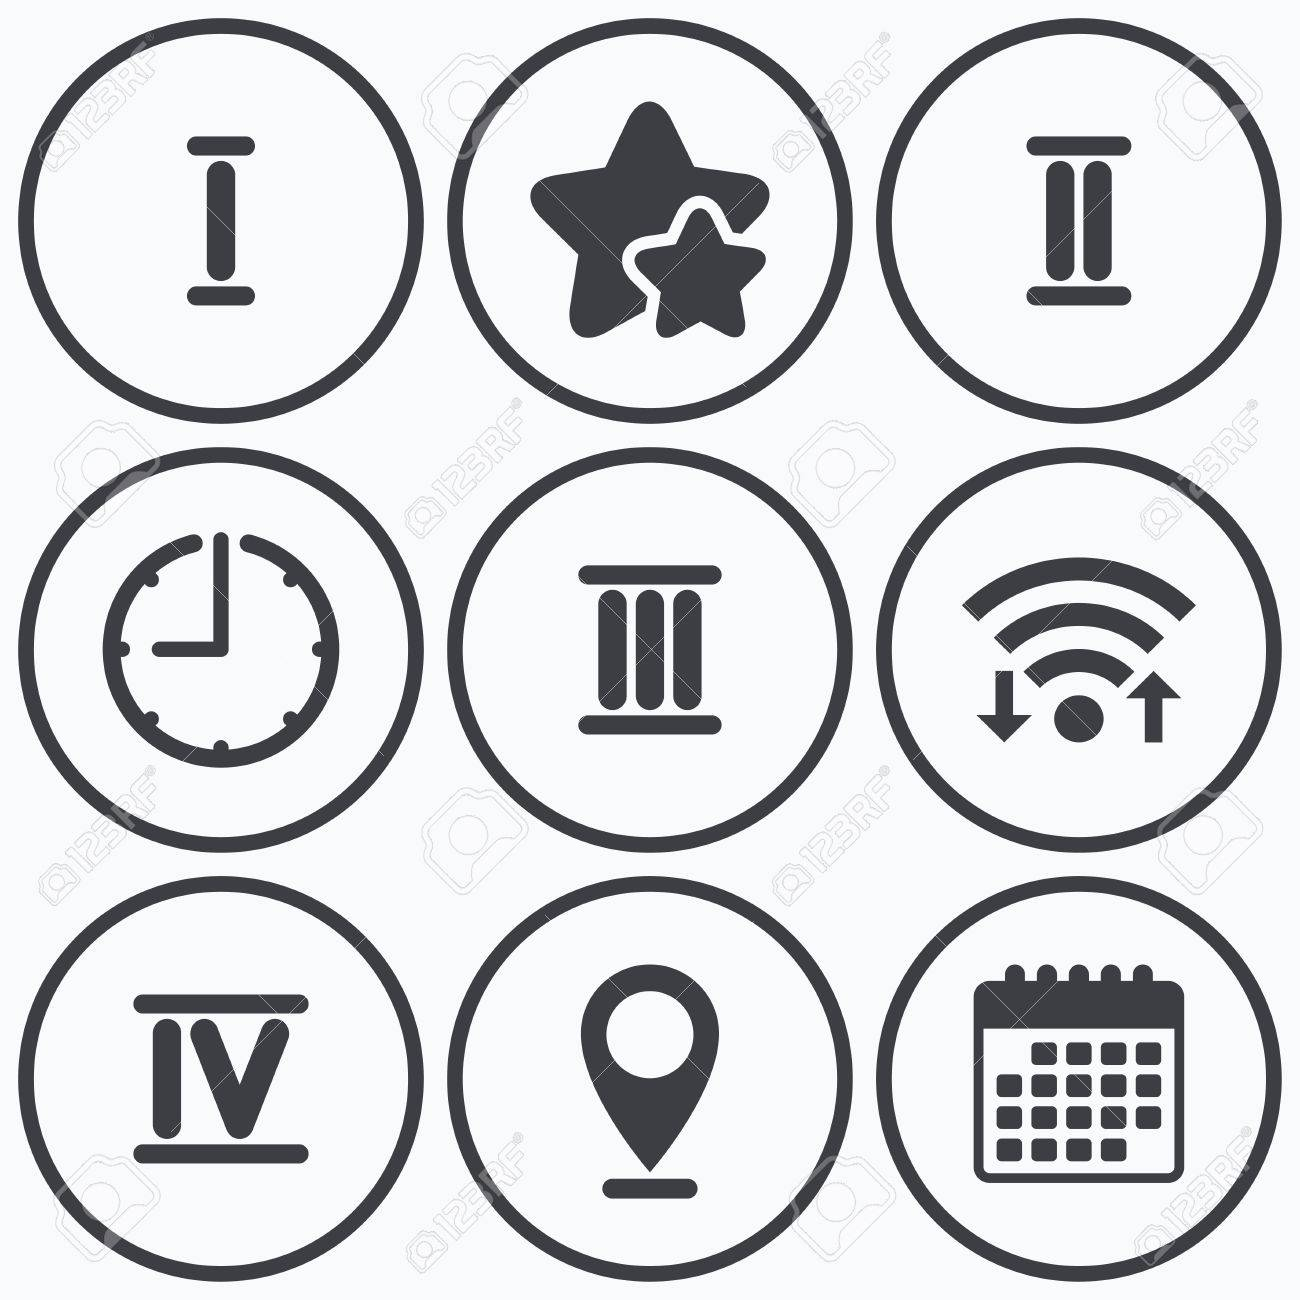 Clock Wifi And Stars Icons Roman Numeral Icons 1 2 3 And - 3-roman-numerals-clocks